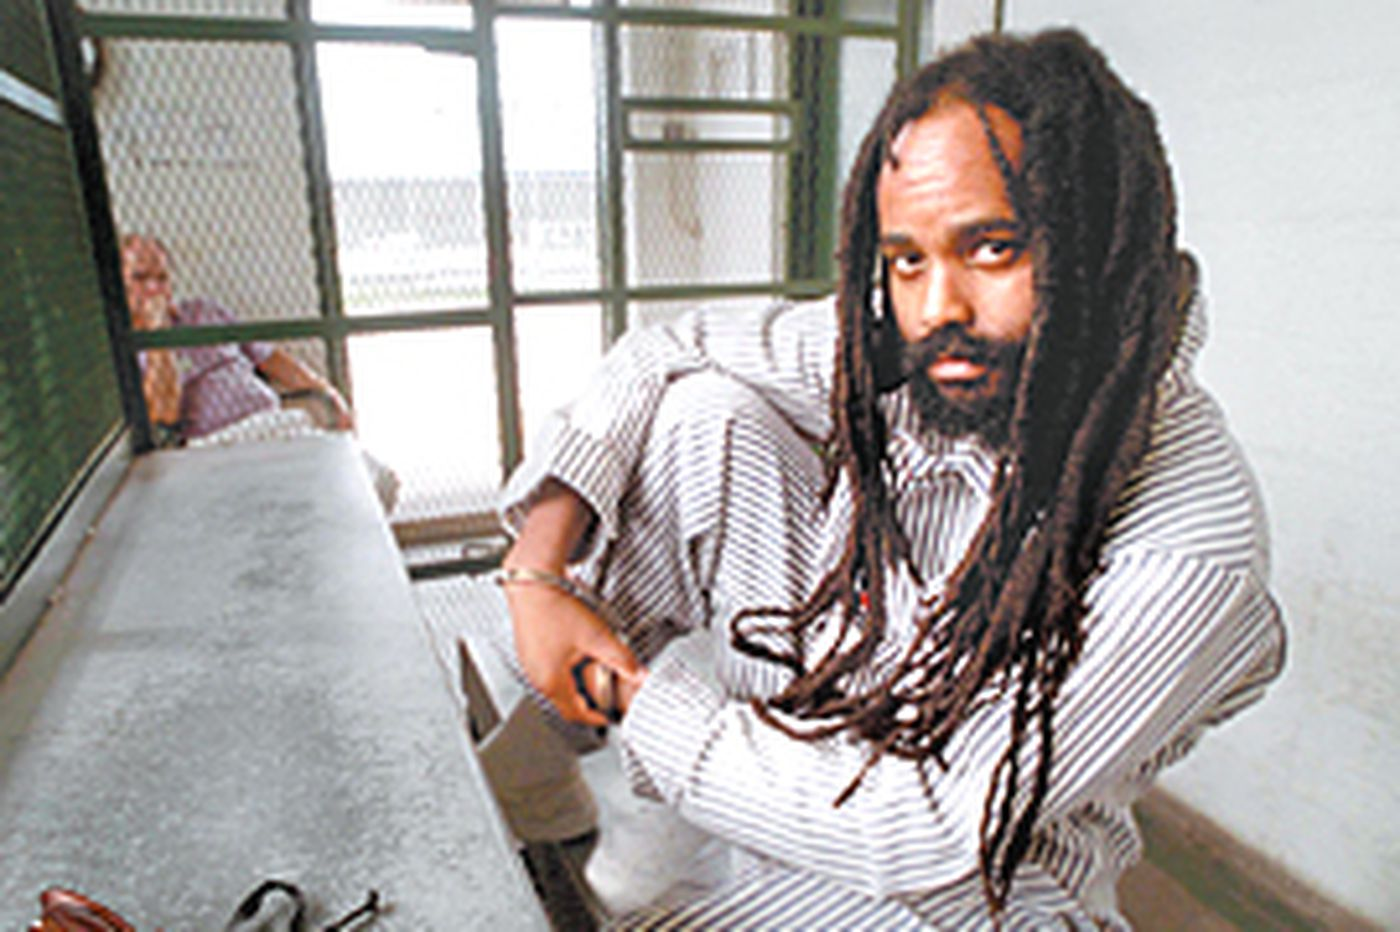 Ruling near on Abu-Jamal jury